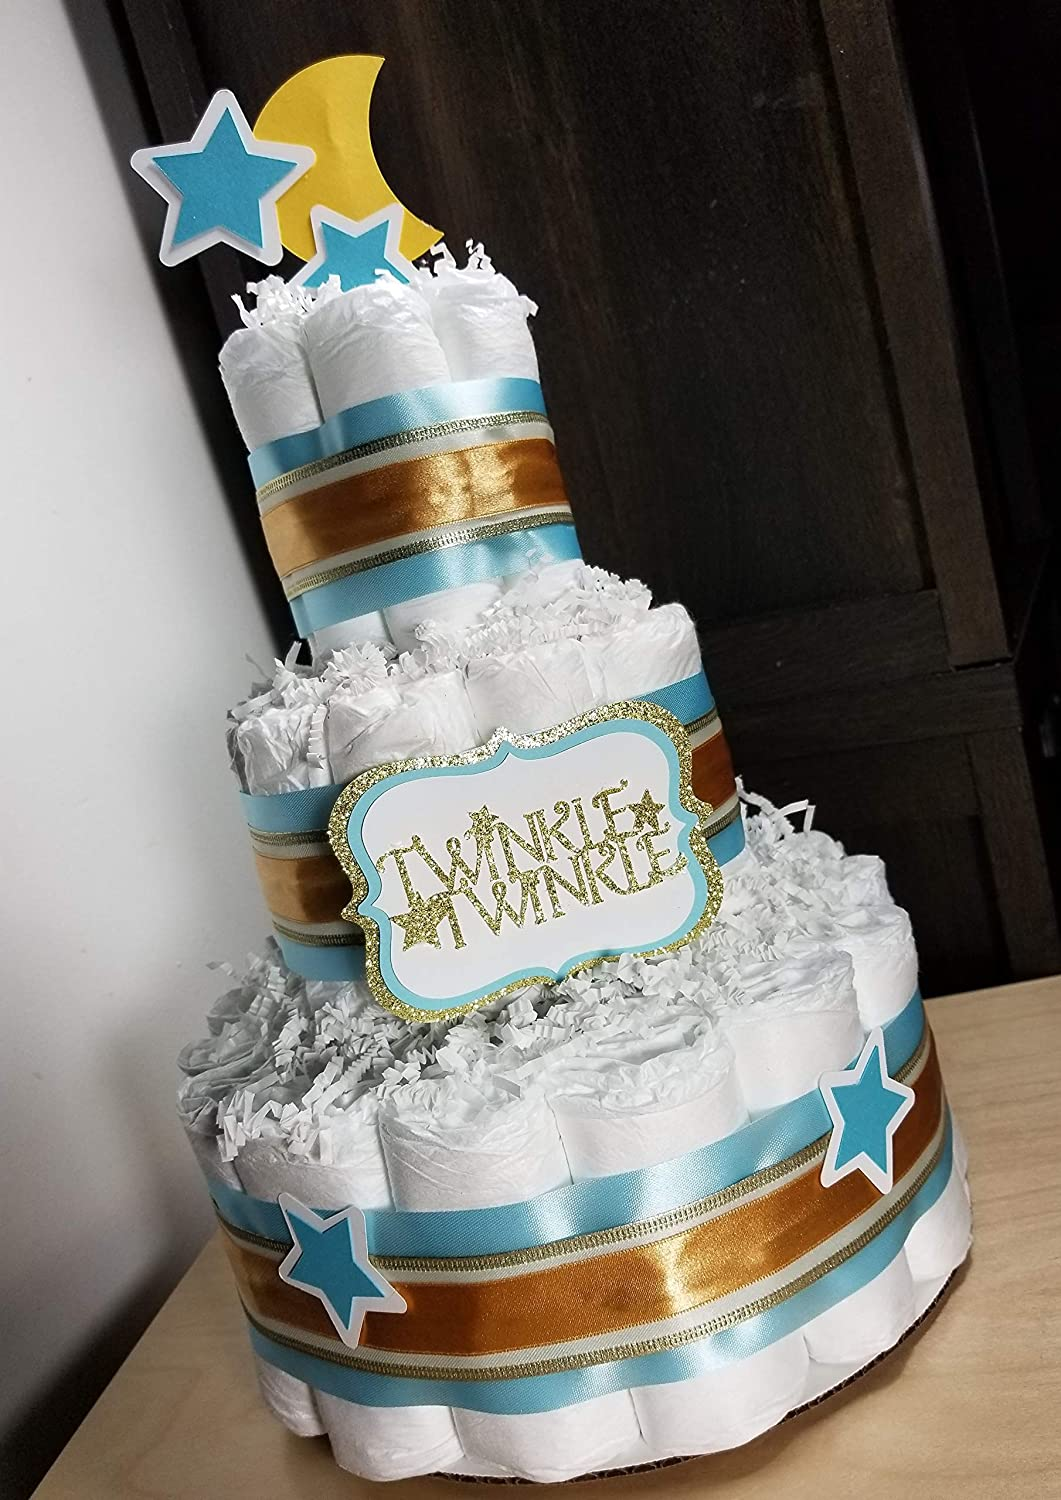 Twinkle Twinkle Blue and Silver with Moon and Stars 3 Tier Diaper Cake